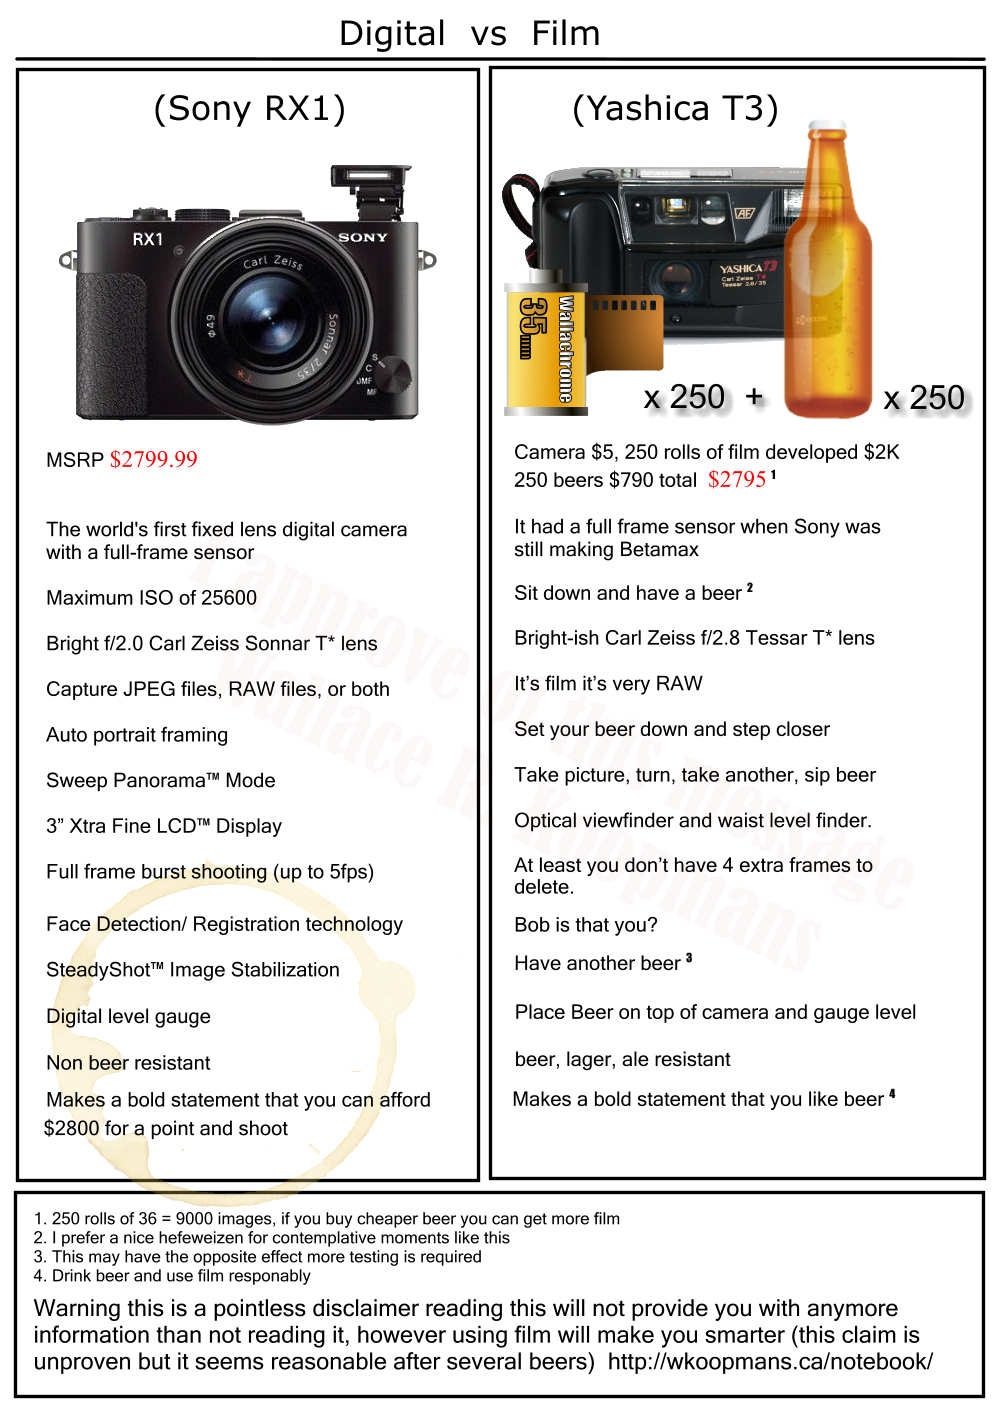 Sony RX1 vs Beer